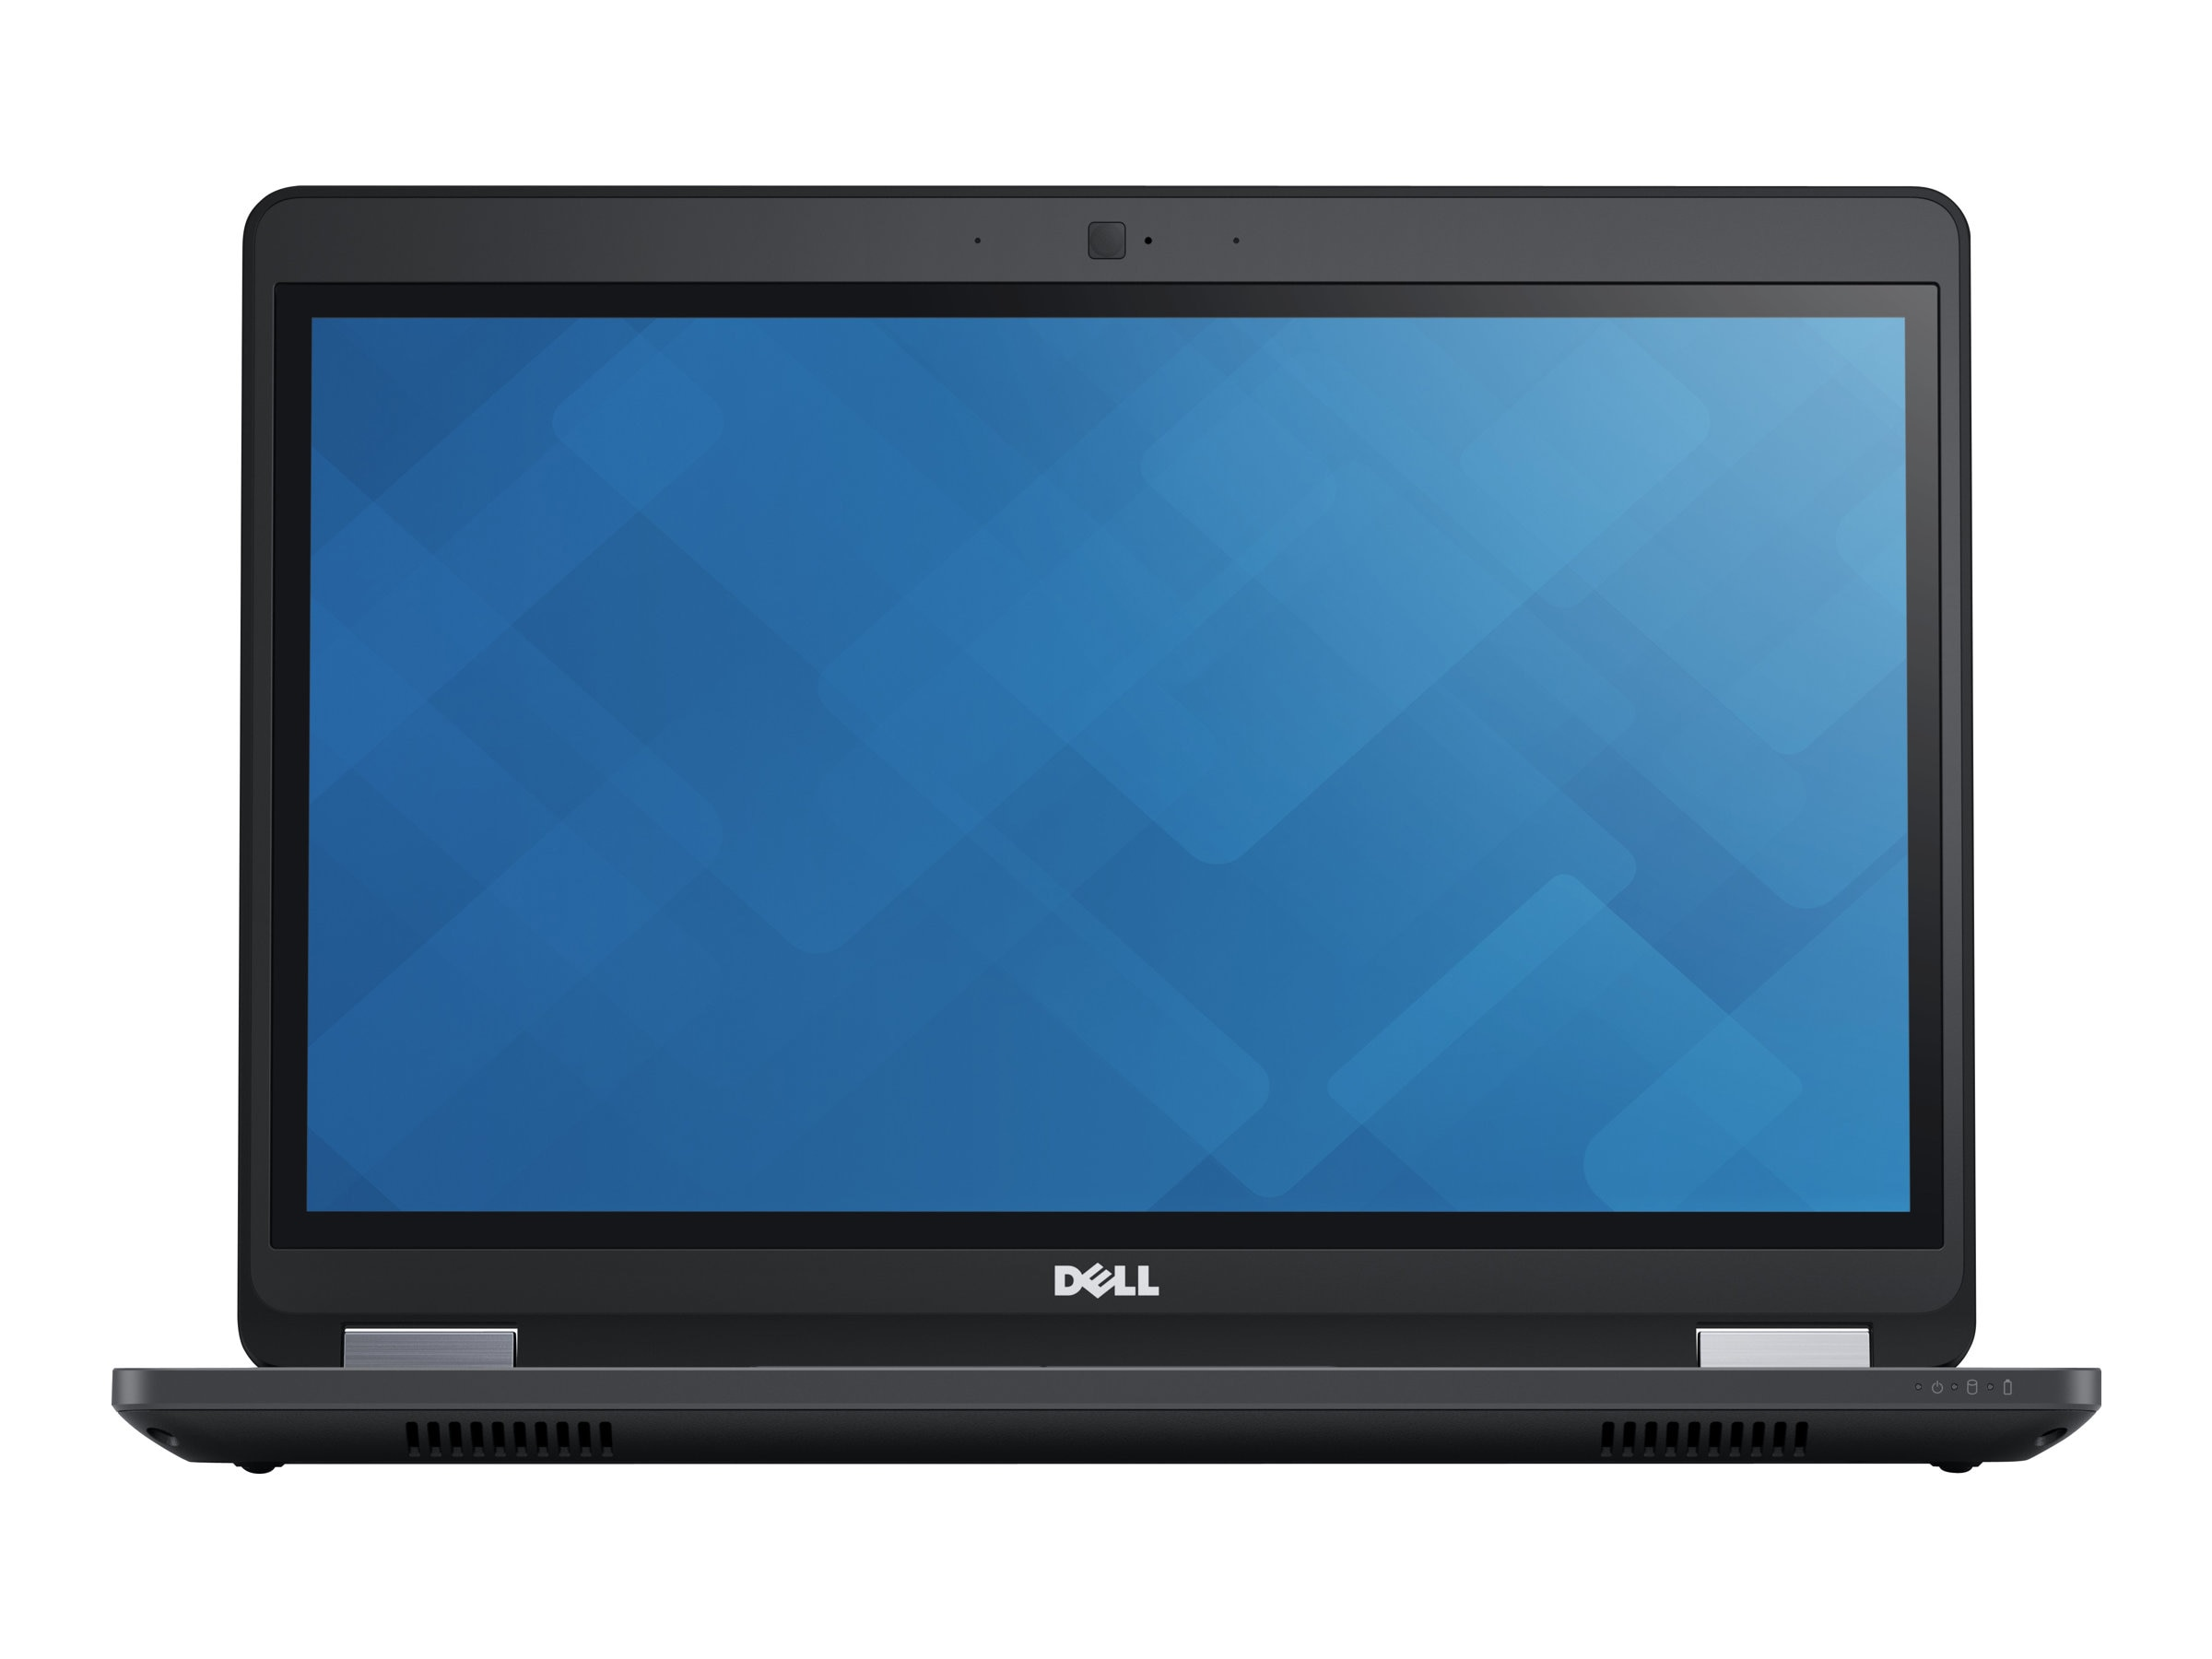 Dell Latitude E5470U Core i5-6300U 2.4GHz 8GB 128GB SSD ac BT WC 4C 14 HD W10P64